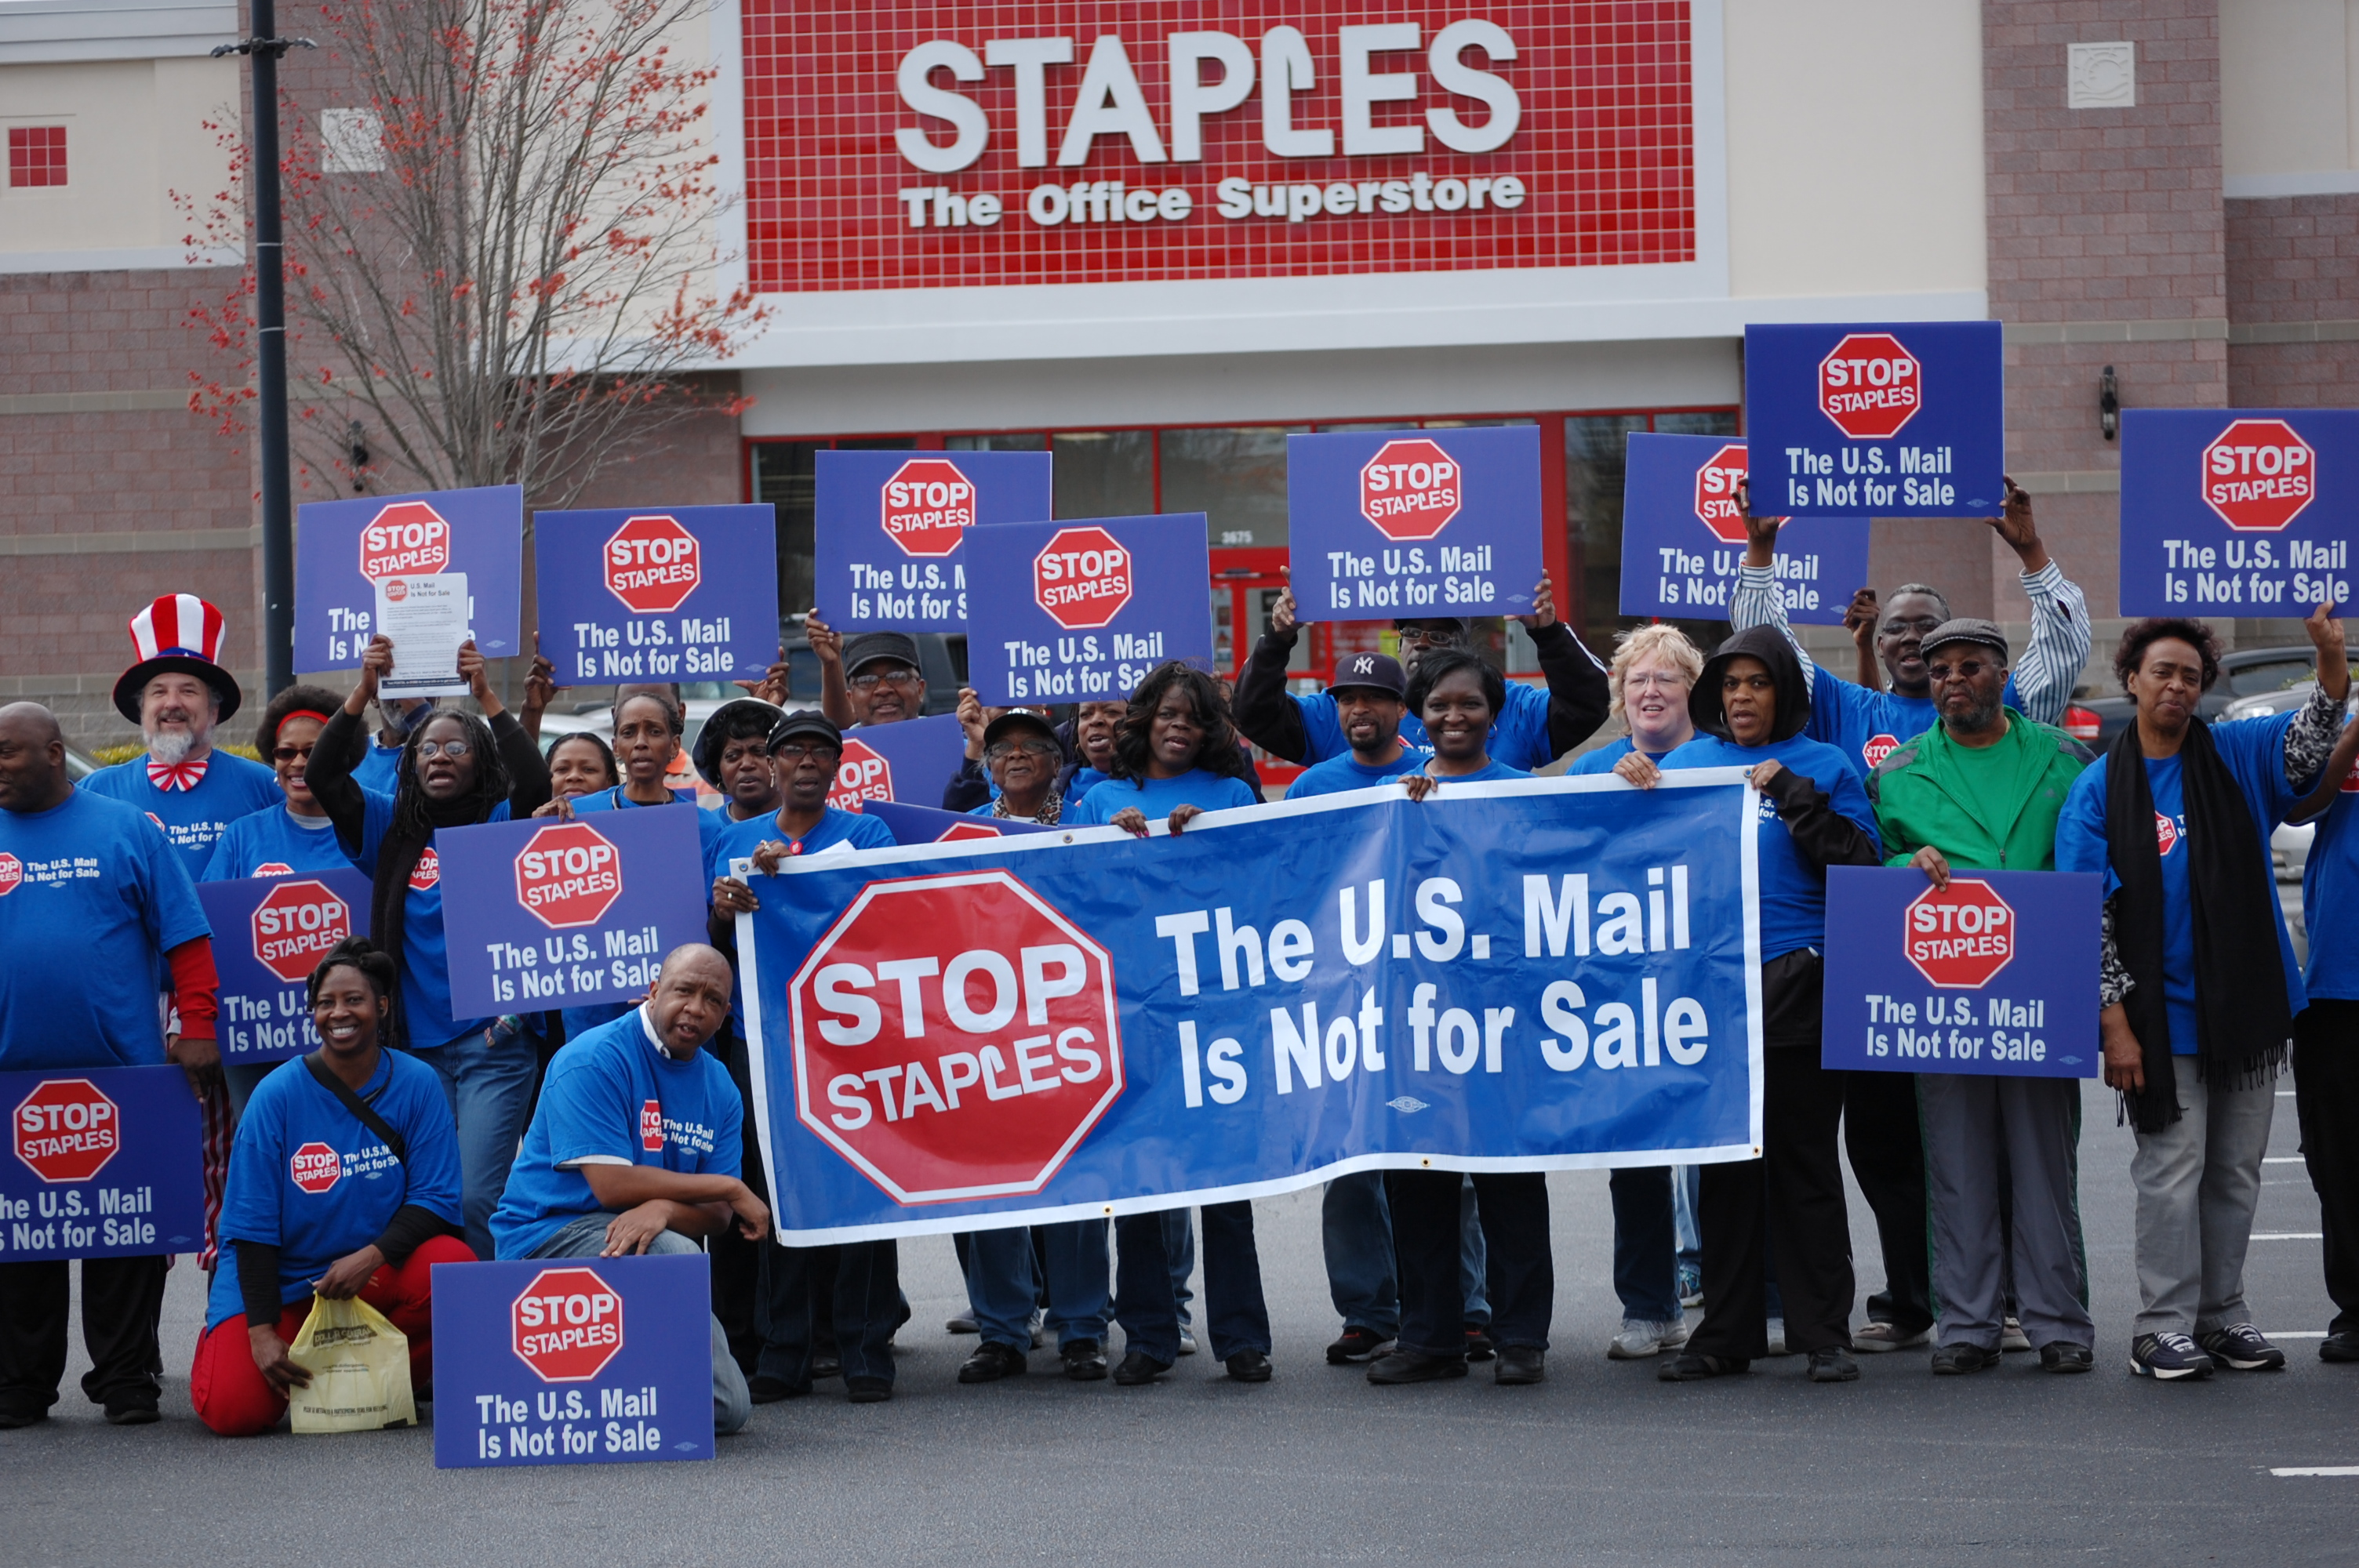 Protesters outside an Atlanta Staples